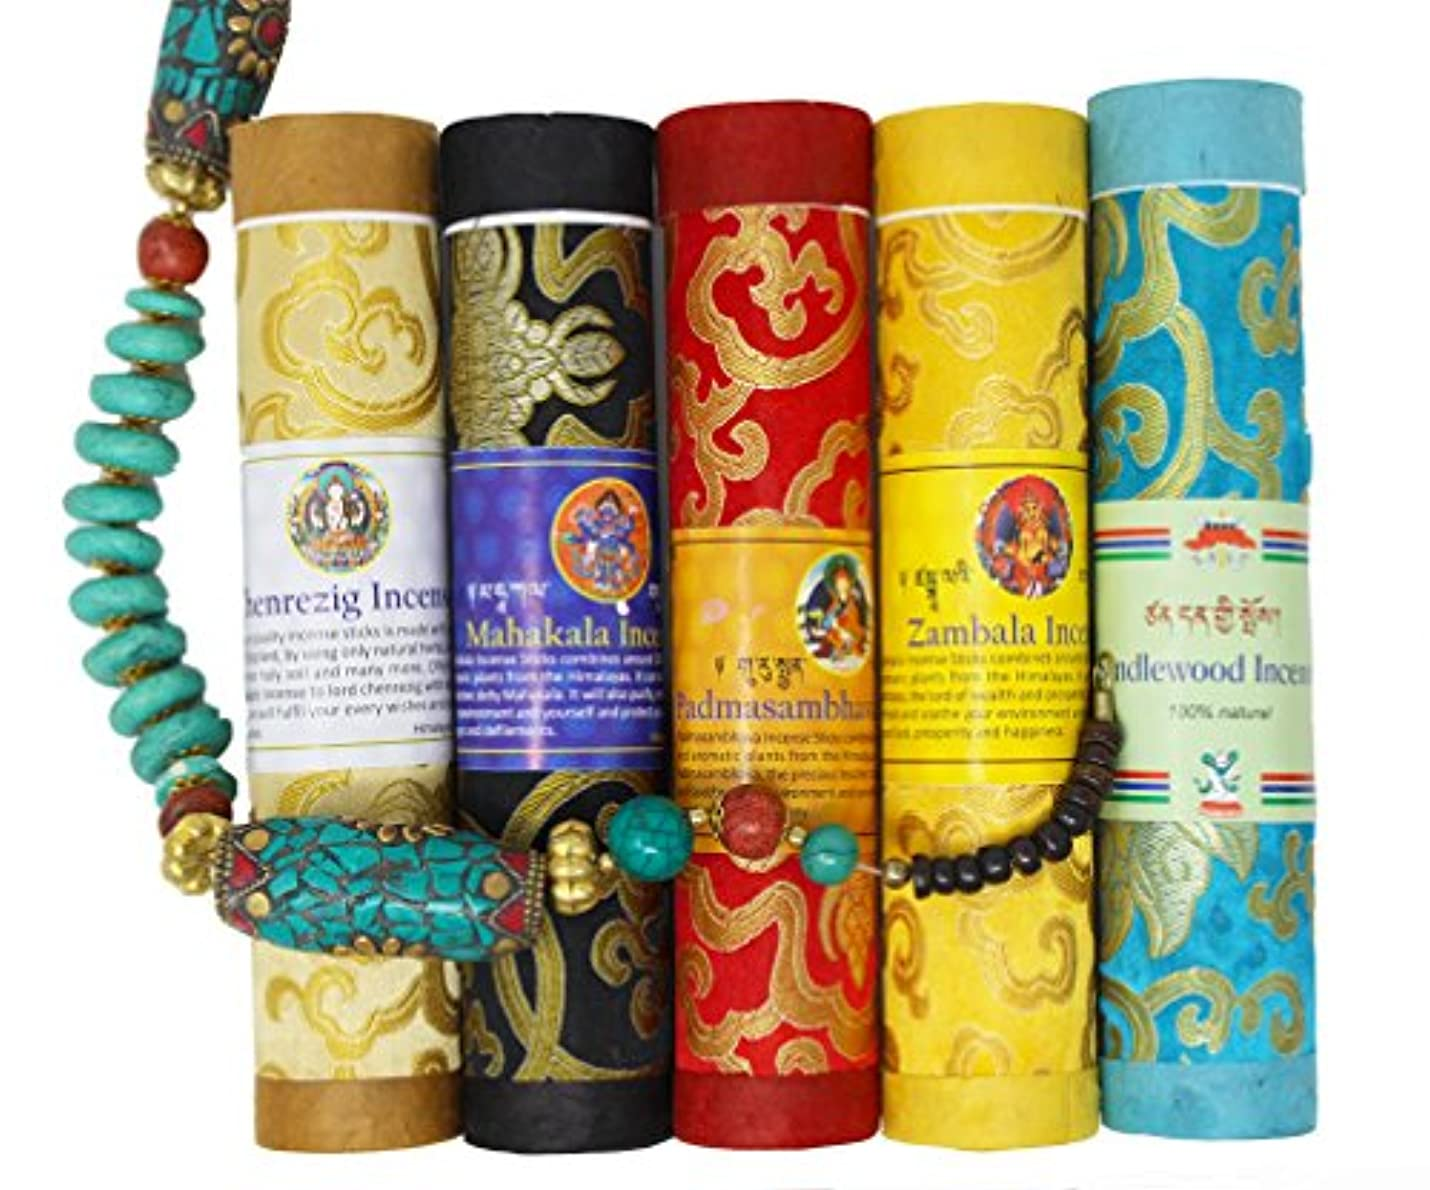 ブラケットバイバイ擬人juccini Tibetan Incense Sticks ~ Spiritual Healing Hand Rolled Incense Made from Organic Himalayan Herbs